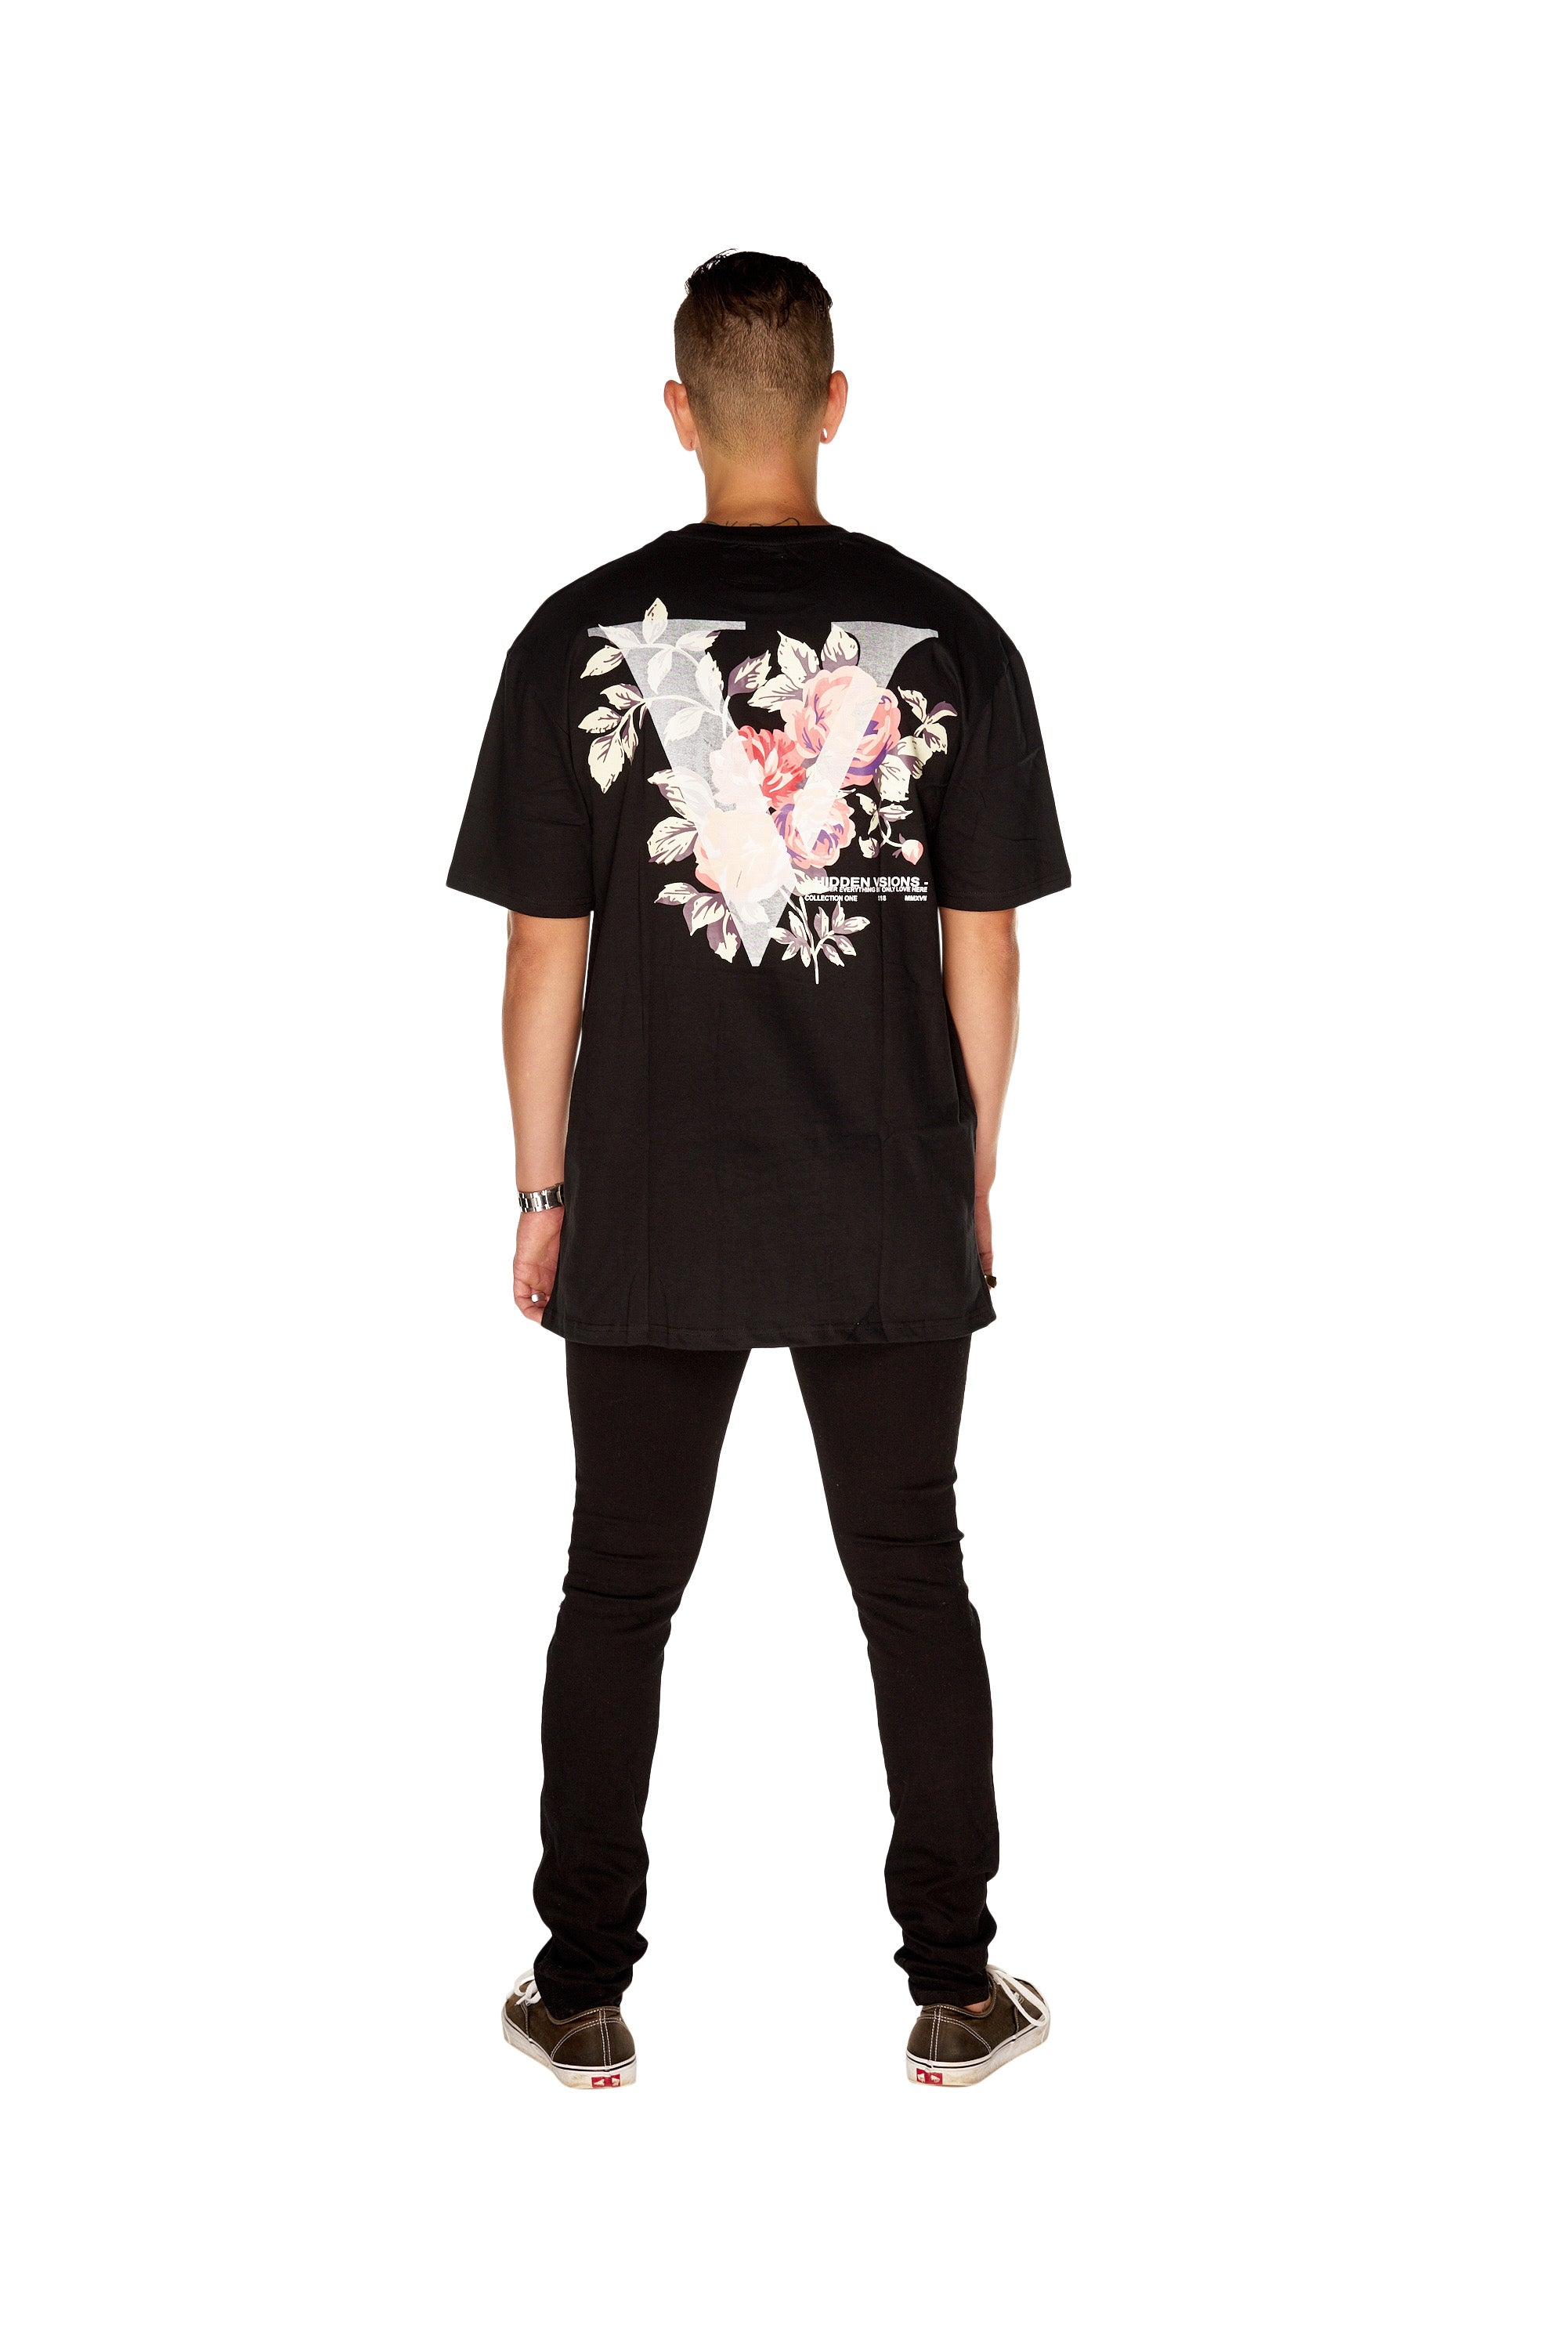 Prey for Love T Shirt